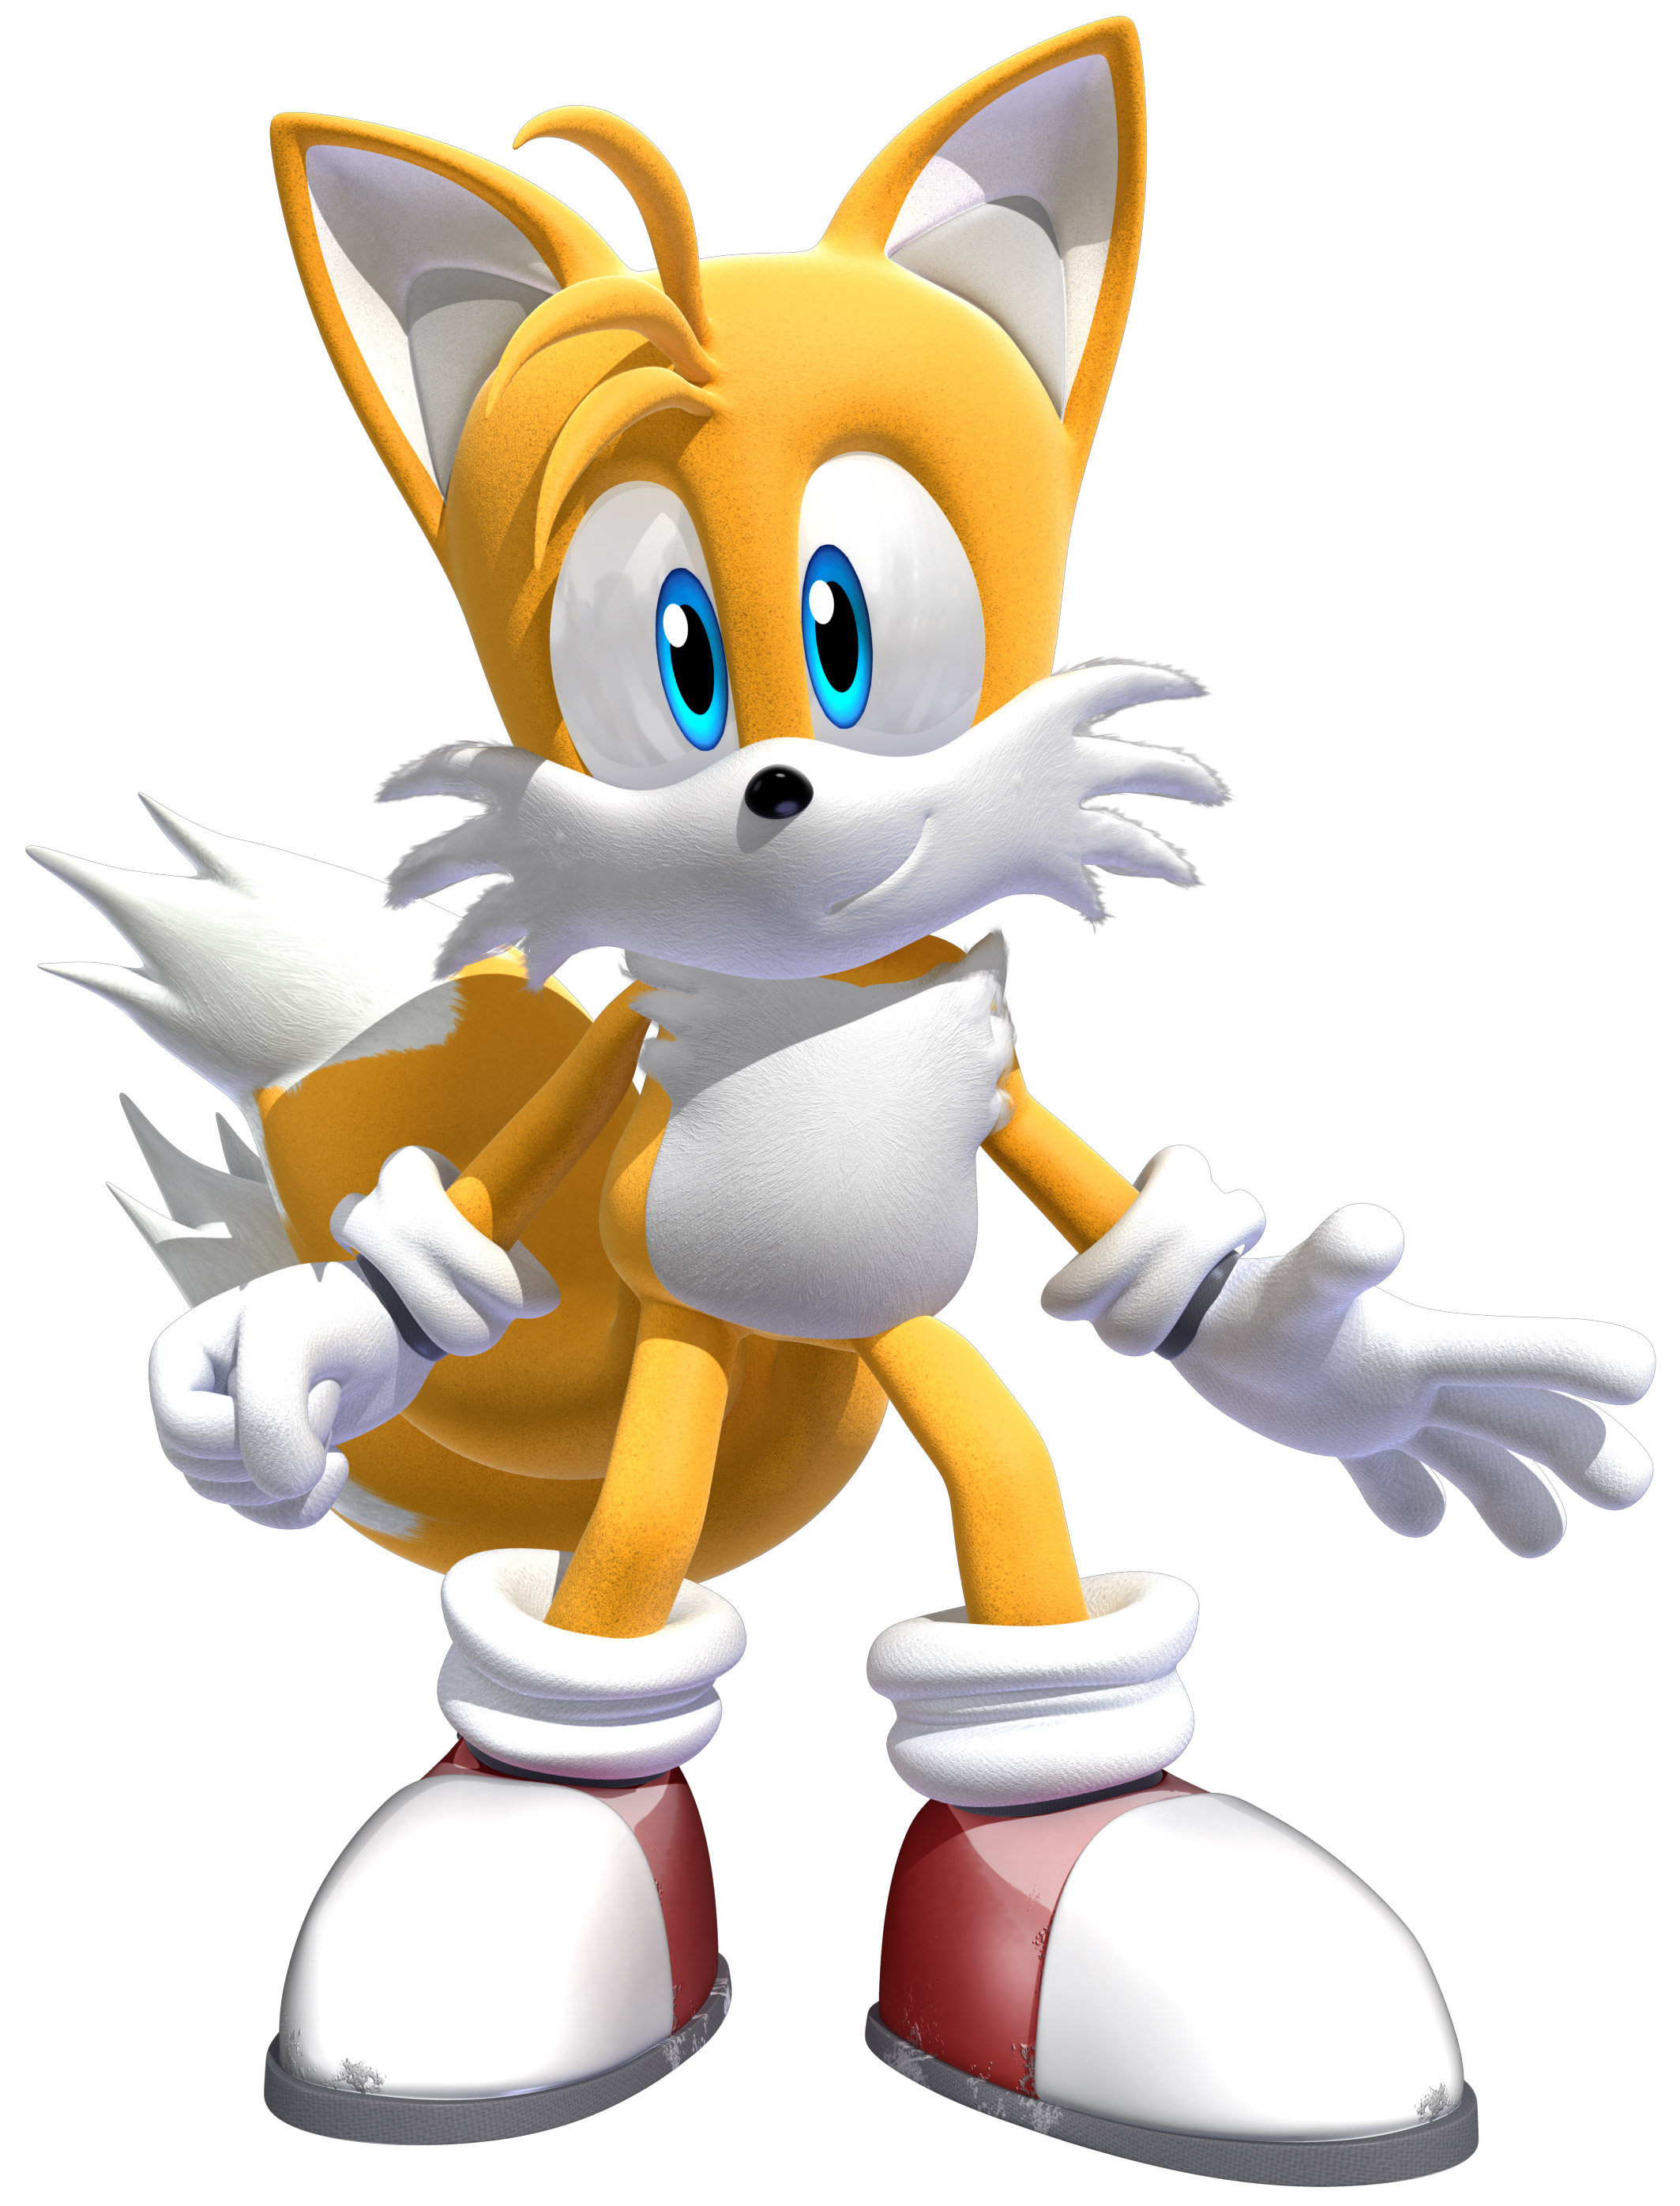 Miles Quot Tails Quot Prower Sonic The Hedgehog Image 459845